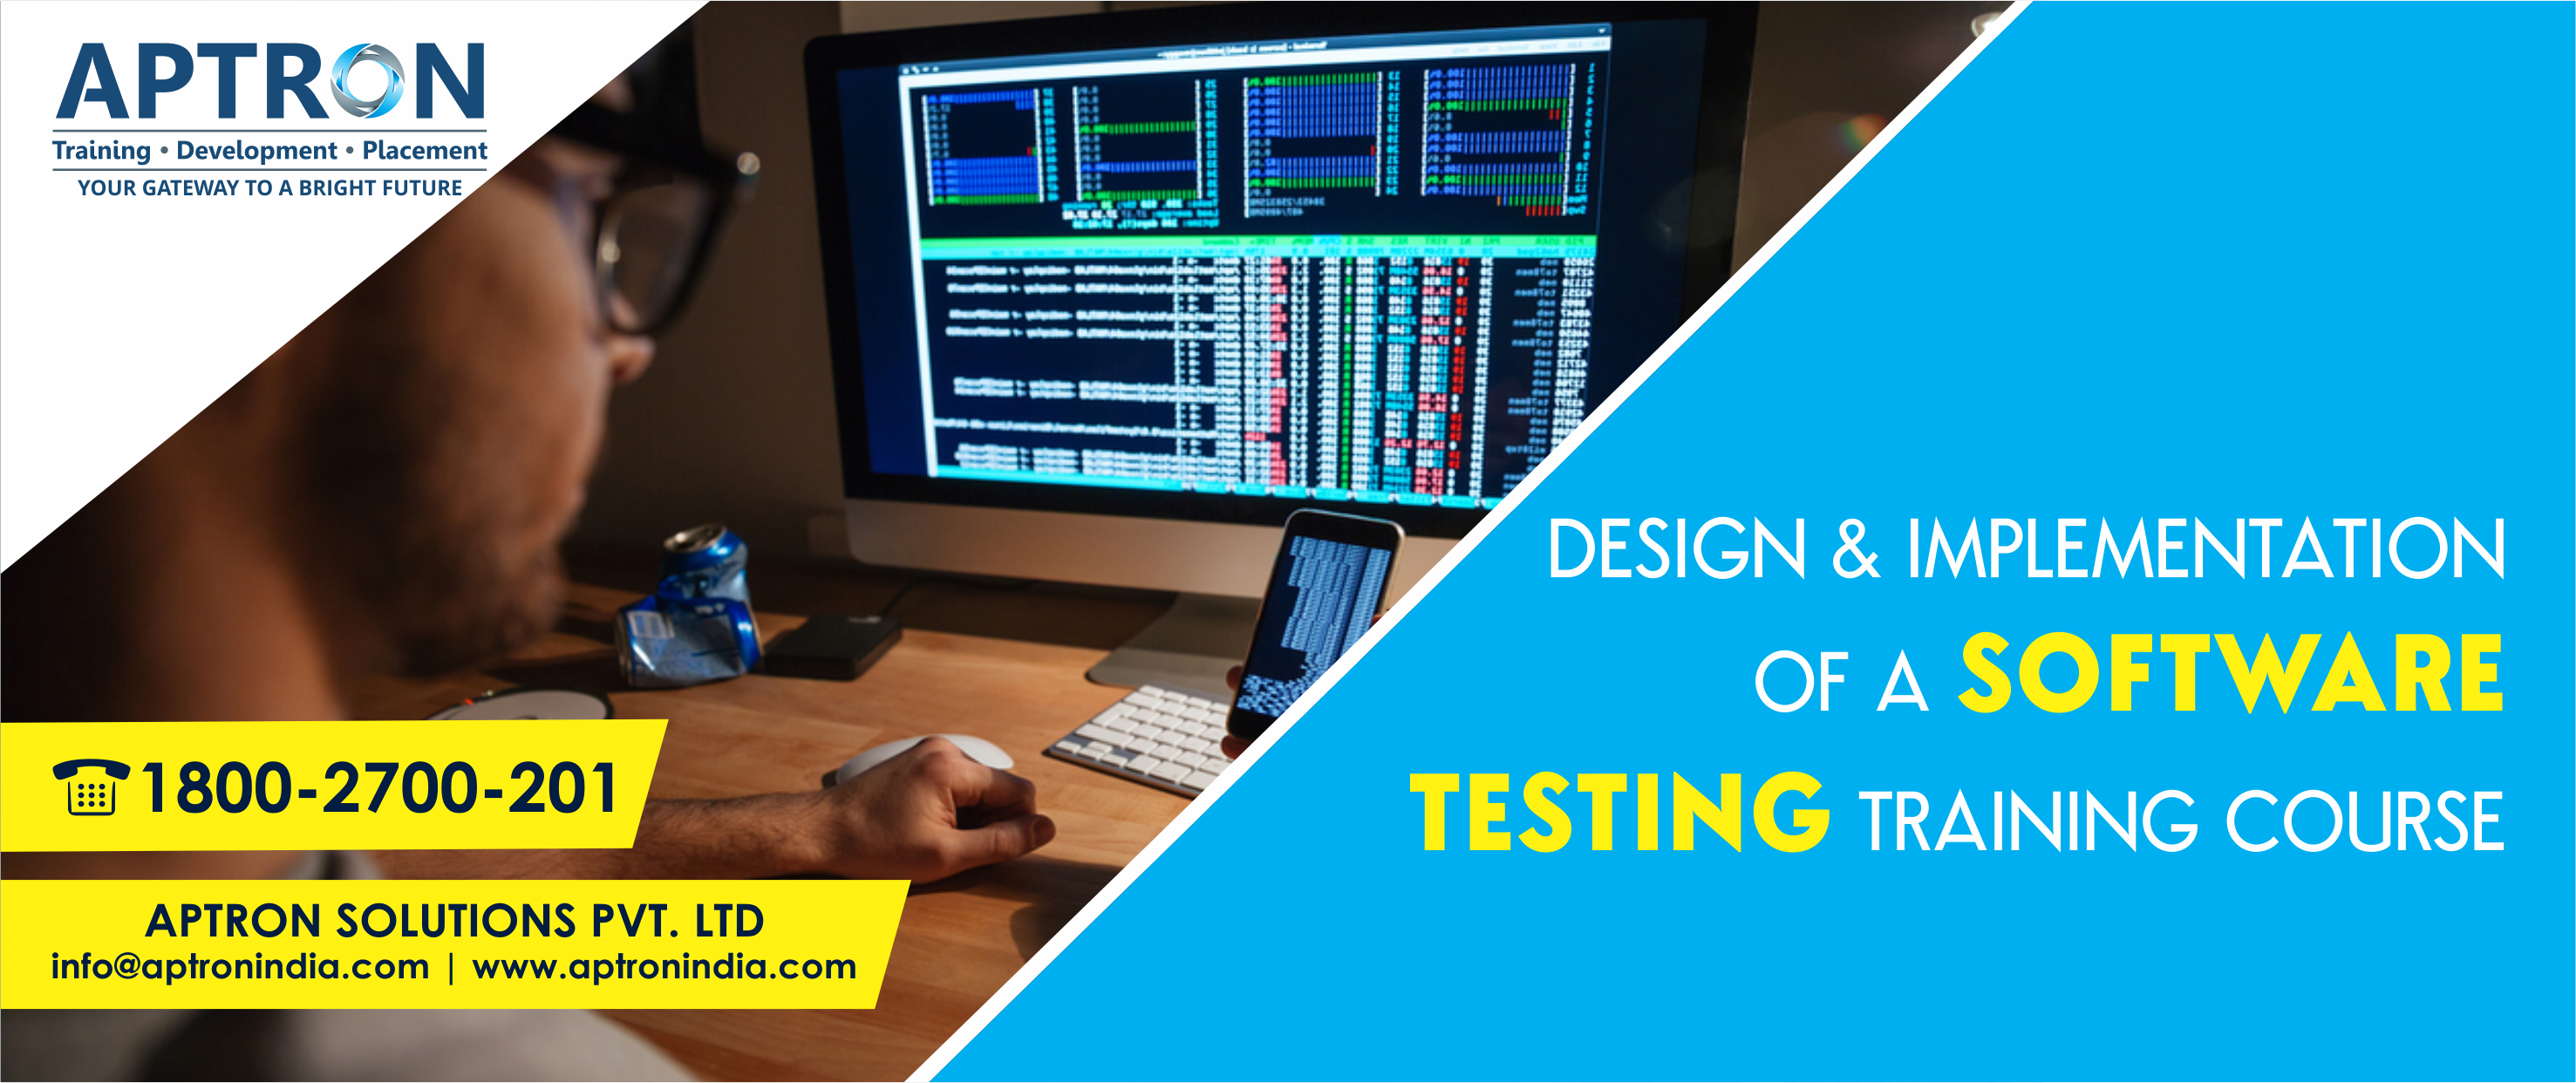 Design and Implementation of a Software Testing Training Course